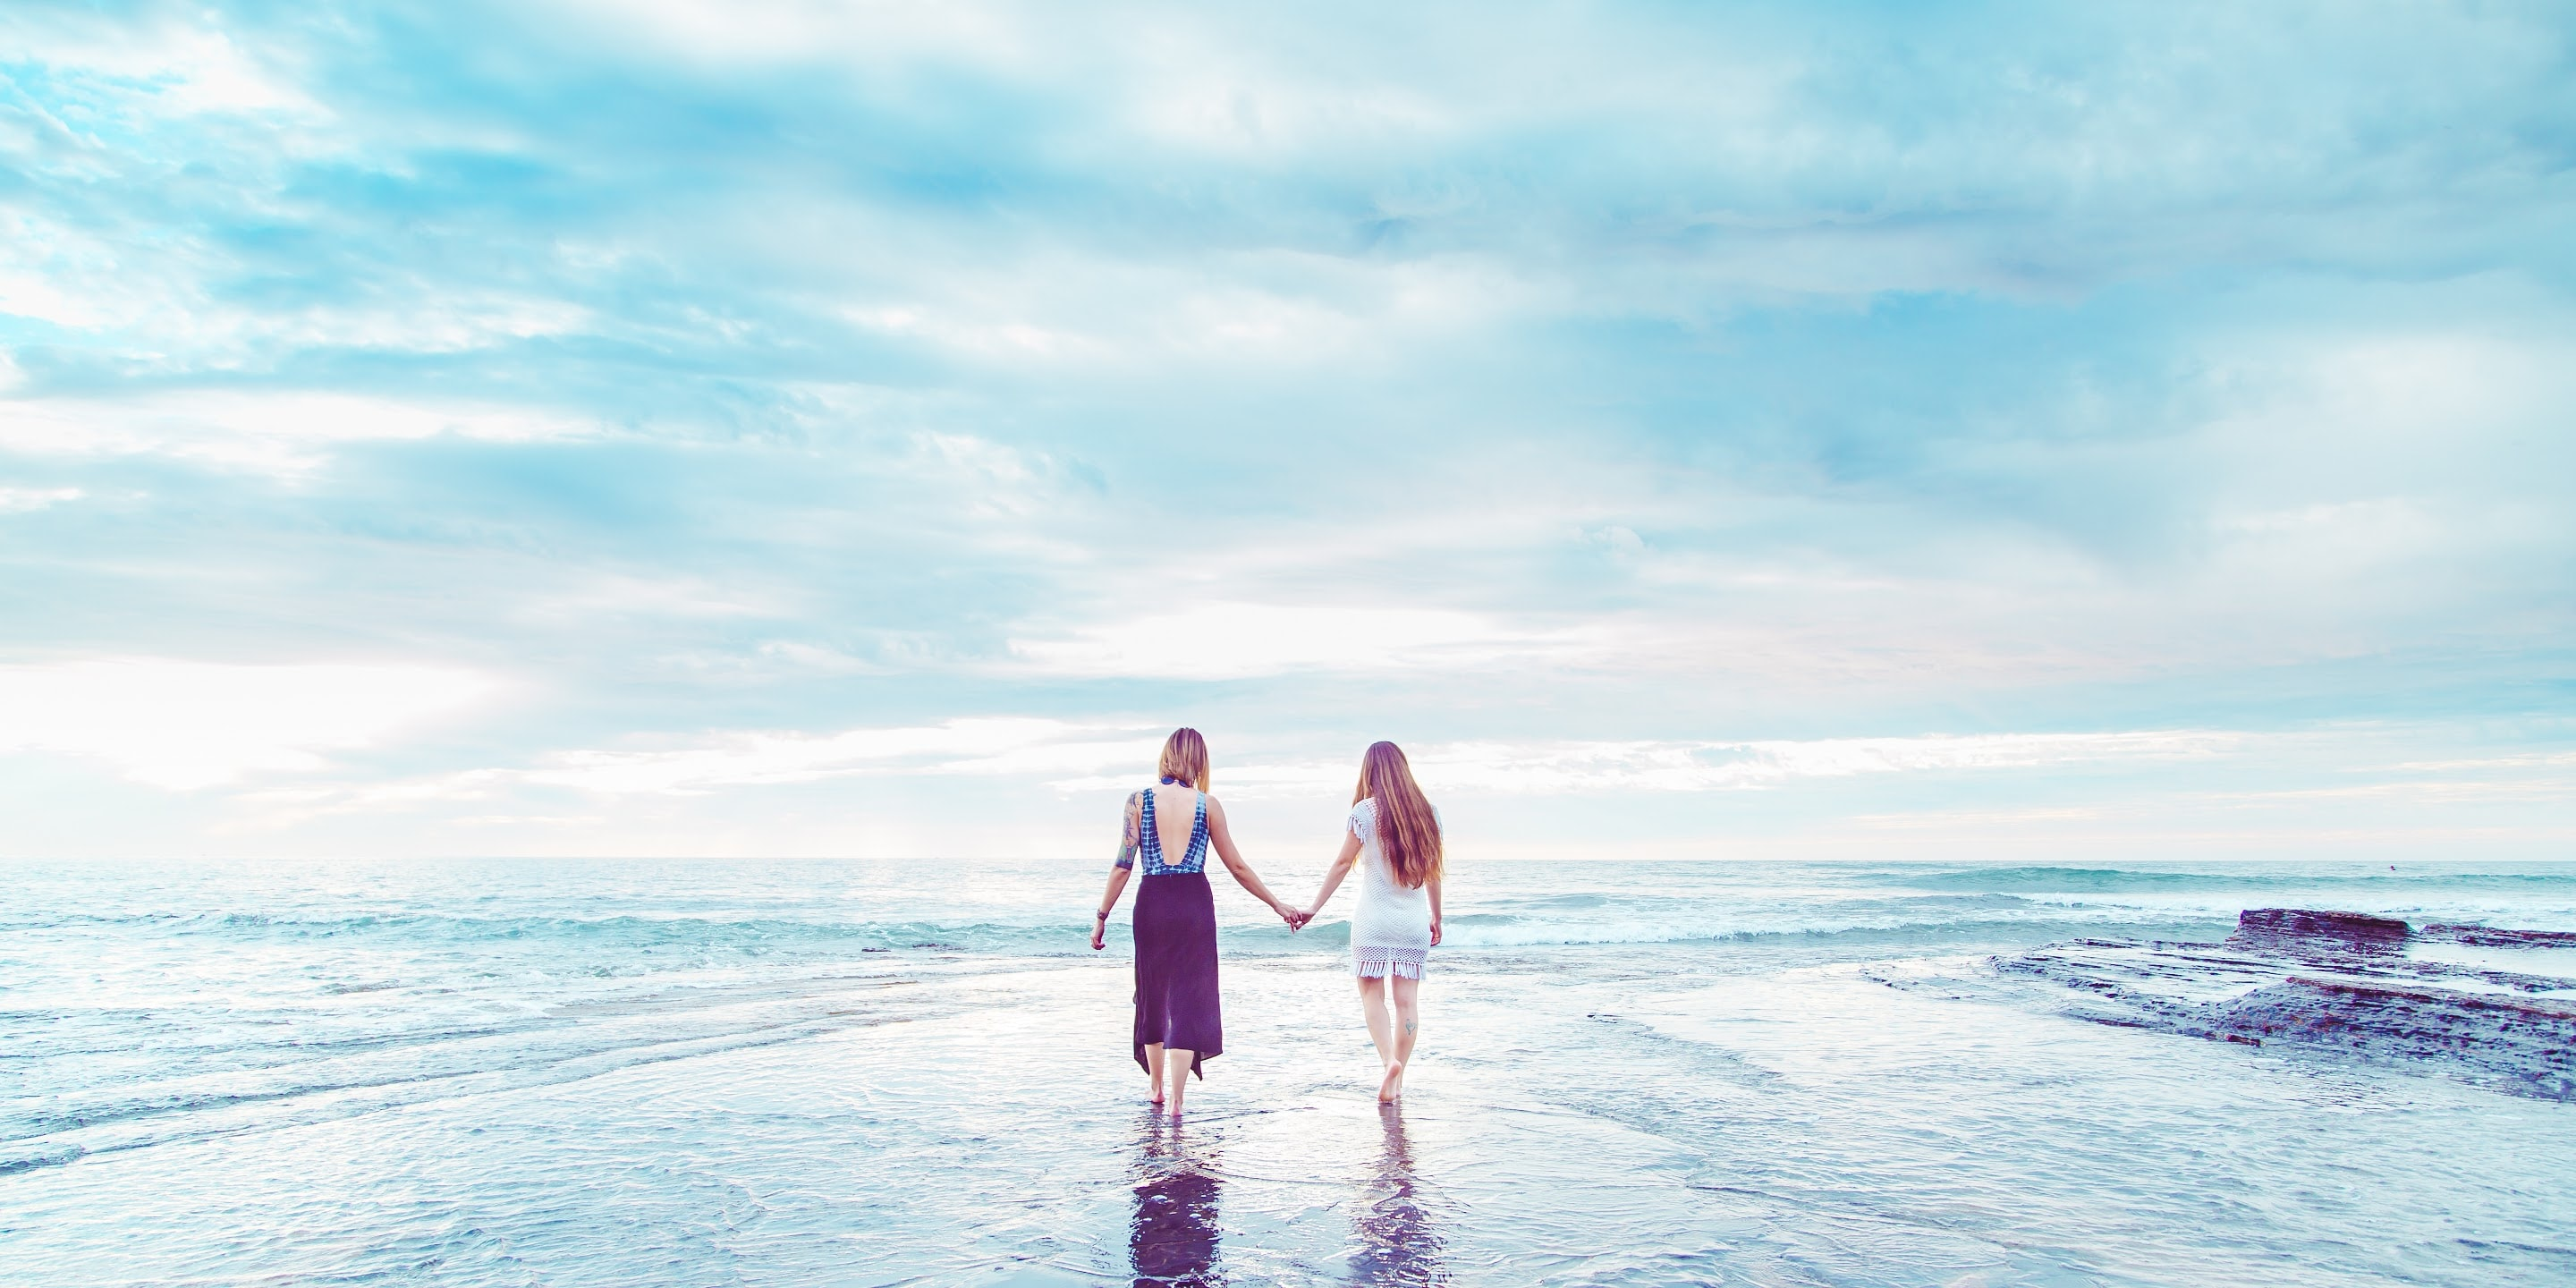 two women walking on shoreline holding hands